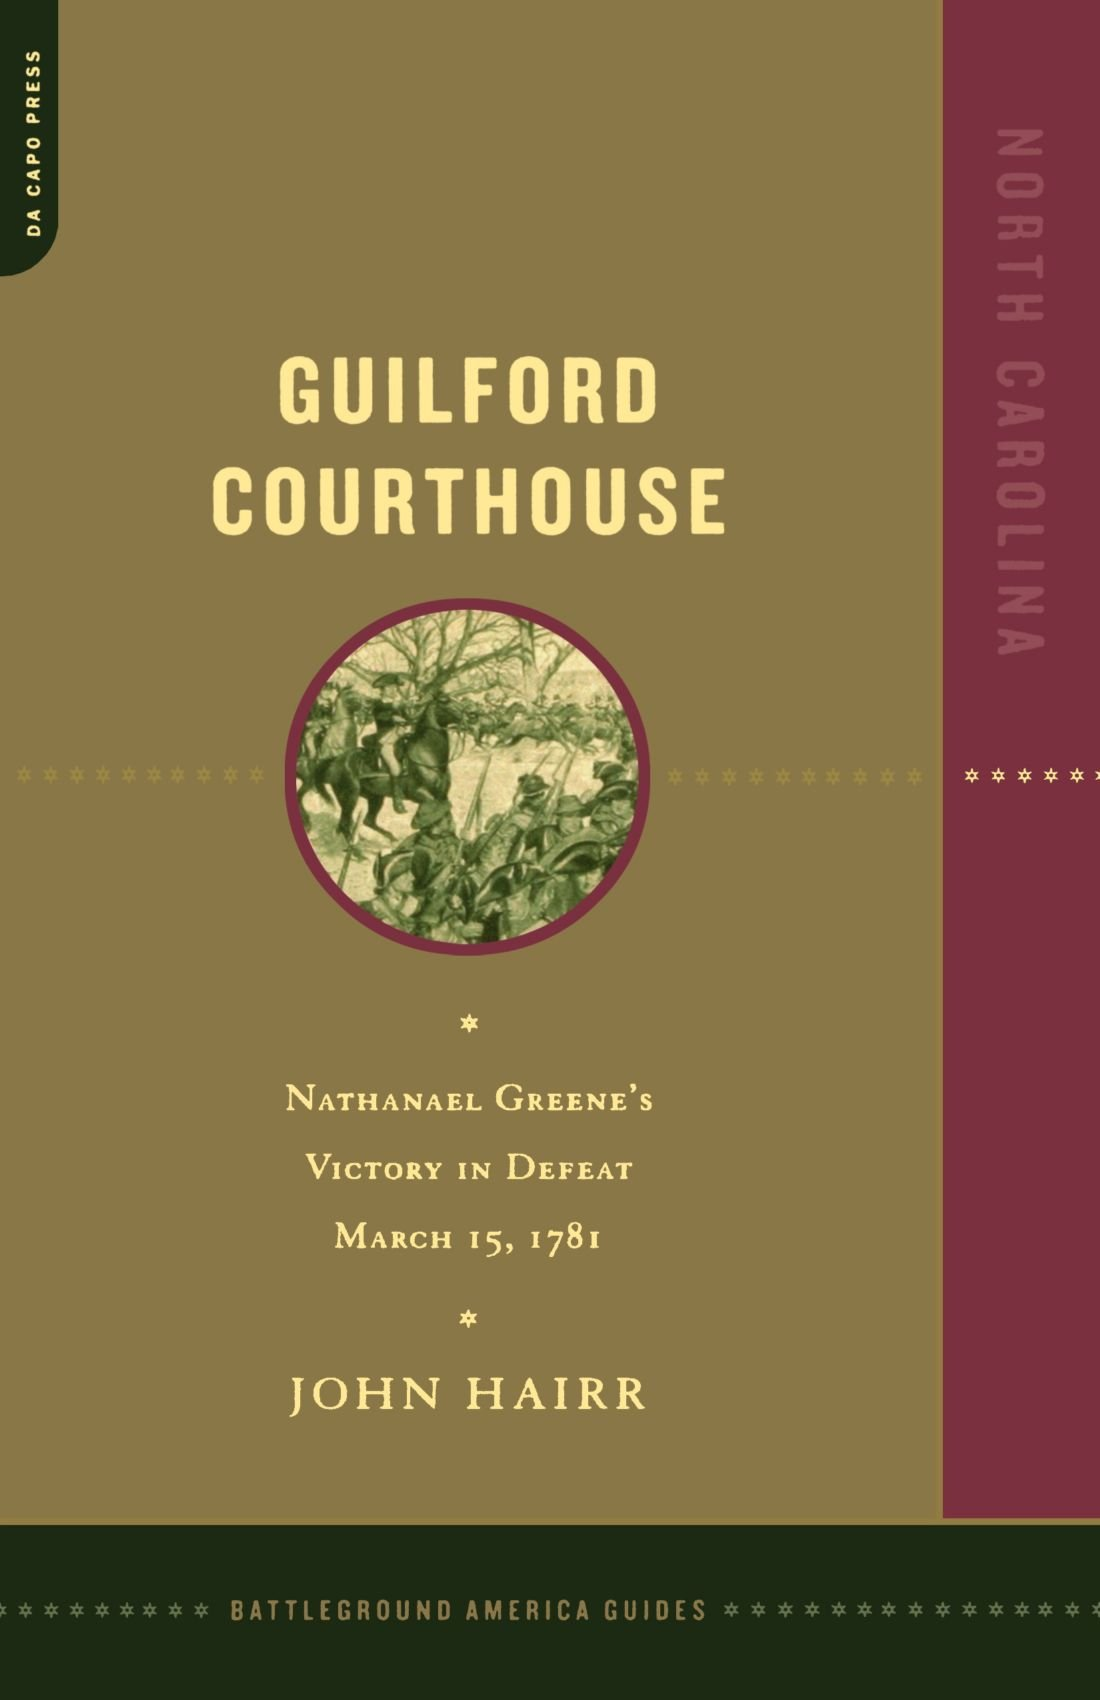 Download Guilford Courthouse: Nathanael Greene's Victory in Defeat, March 15, 1781 (Battleground America Guides) PDF